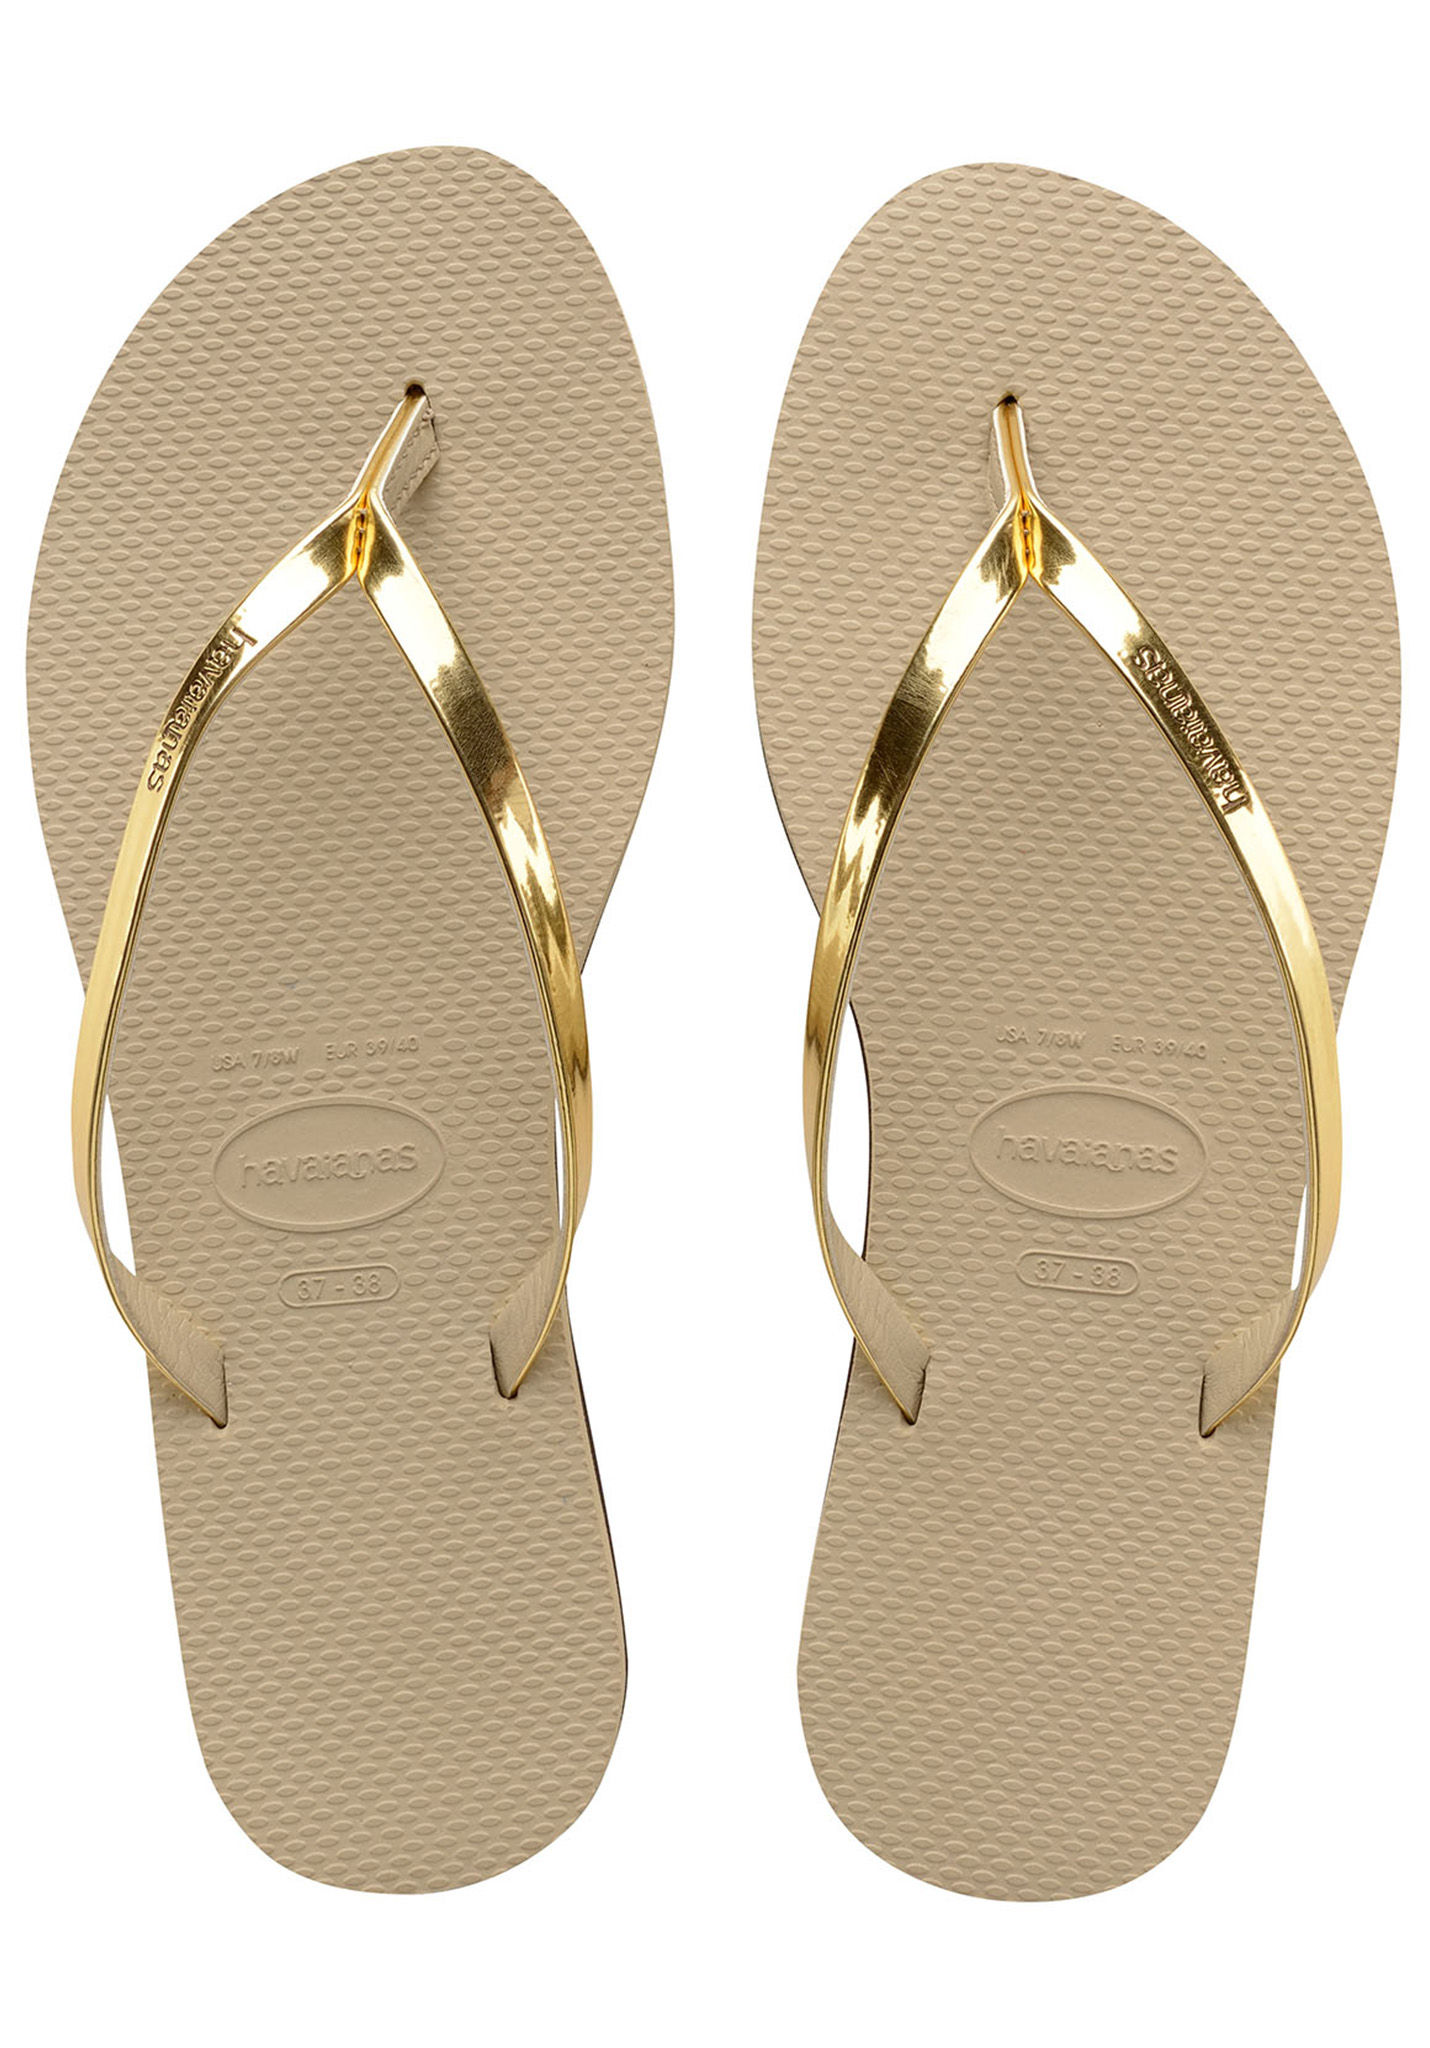 4d1c0032c3ee40 HAVAIANAS You Metallic - Sandals for Women - Gold - Planet Sports